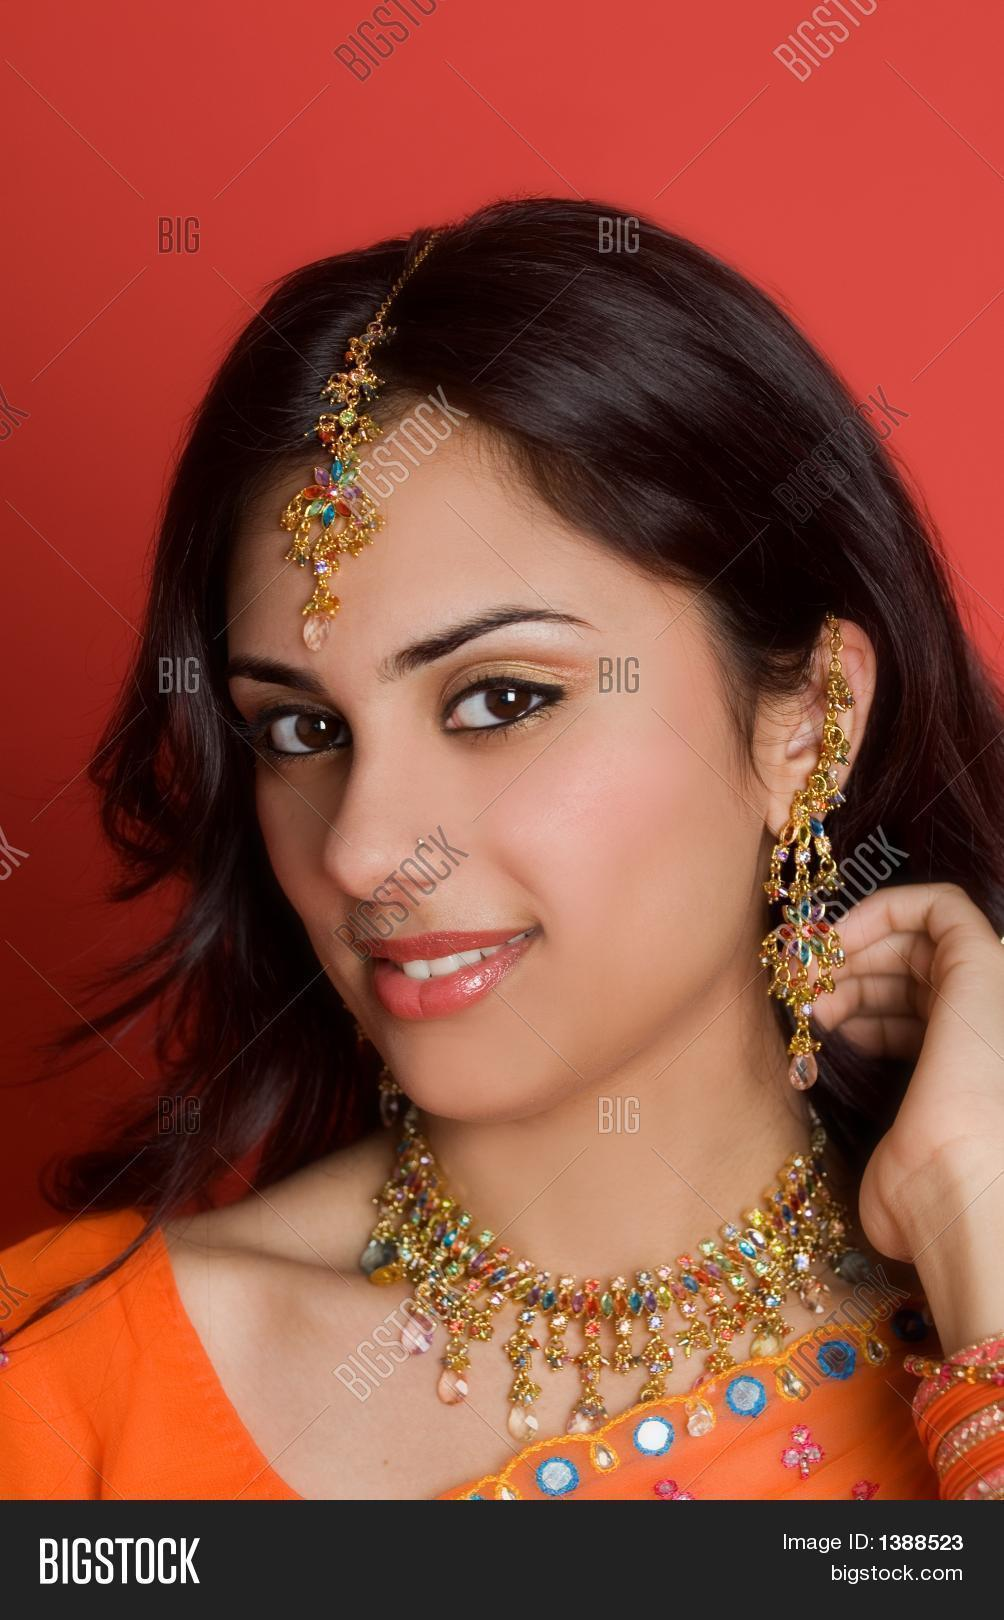 hindu single women in elkville Elkville's best 100% free hindu dating site meet thousands of single hindus in elkville with mingle2's free hindu personal ads and chat rooms our network of hindu men and women in elkville is the perfect place to make hindu friends or find a hindu boyfriend or girlfriend in elkville.